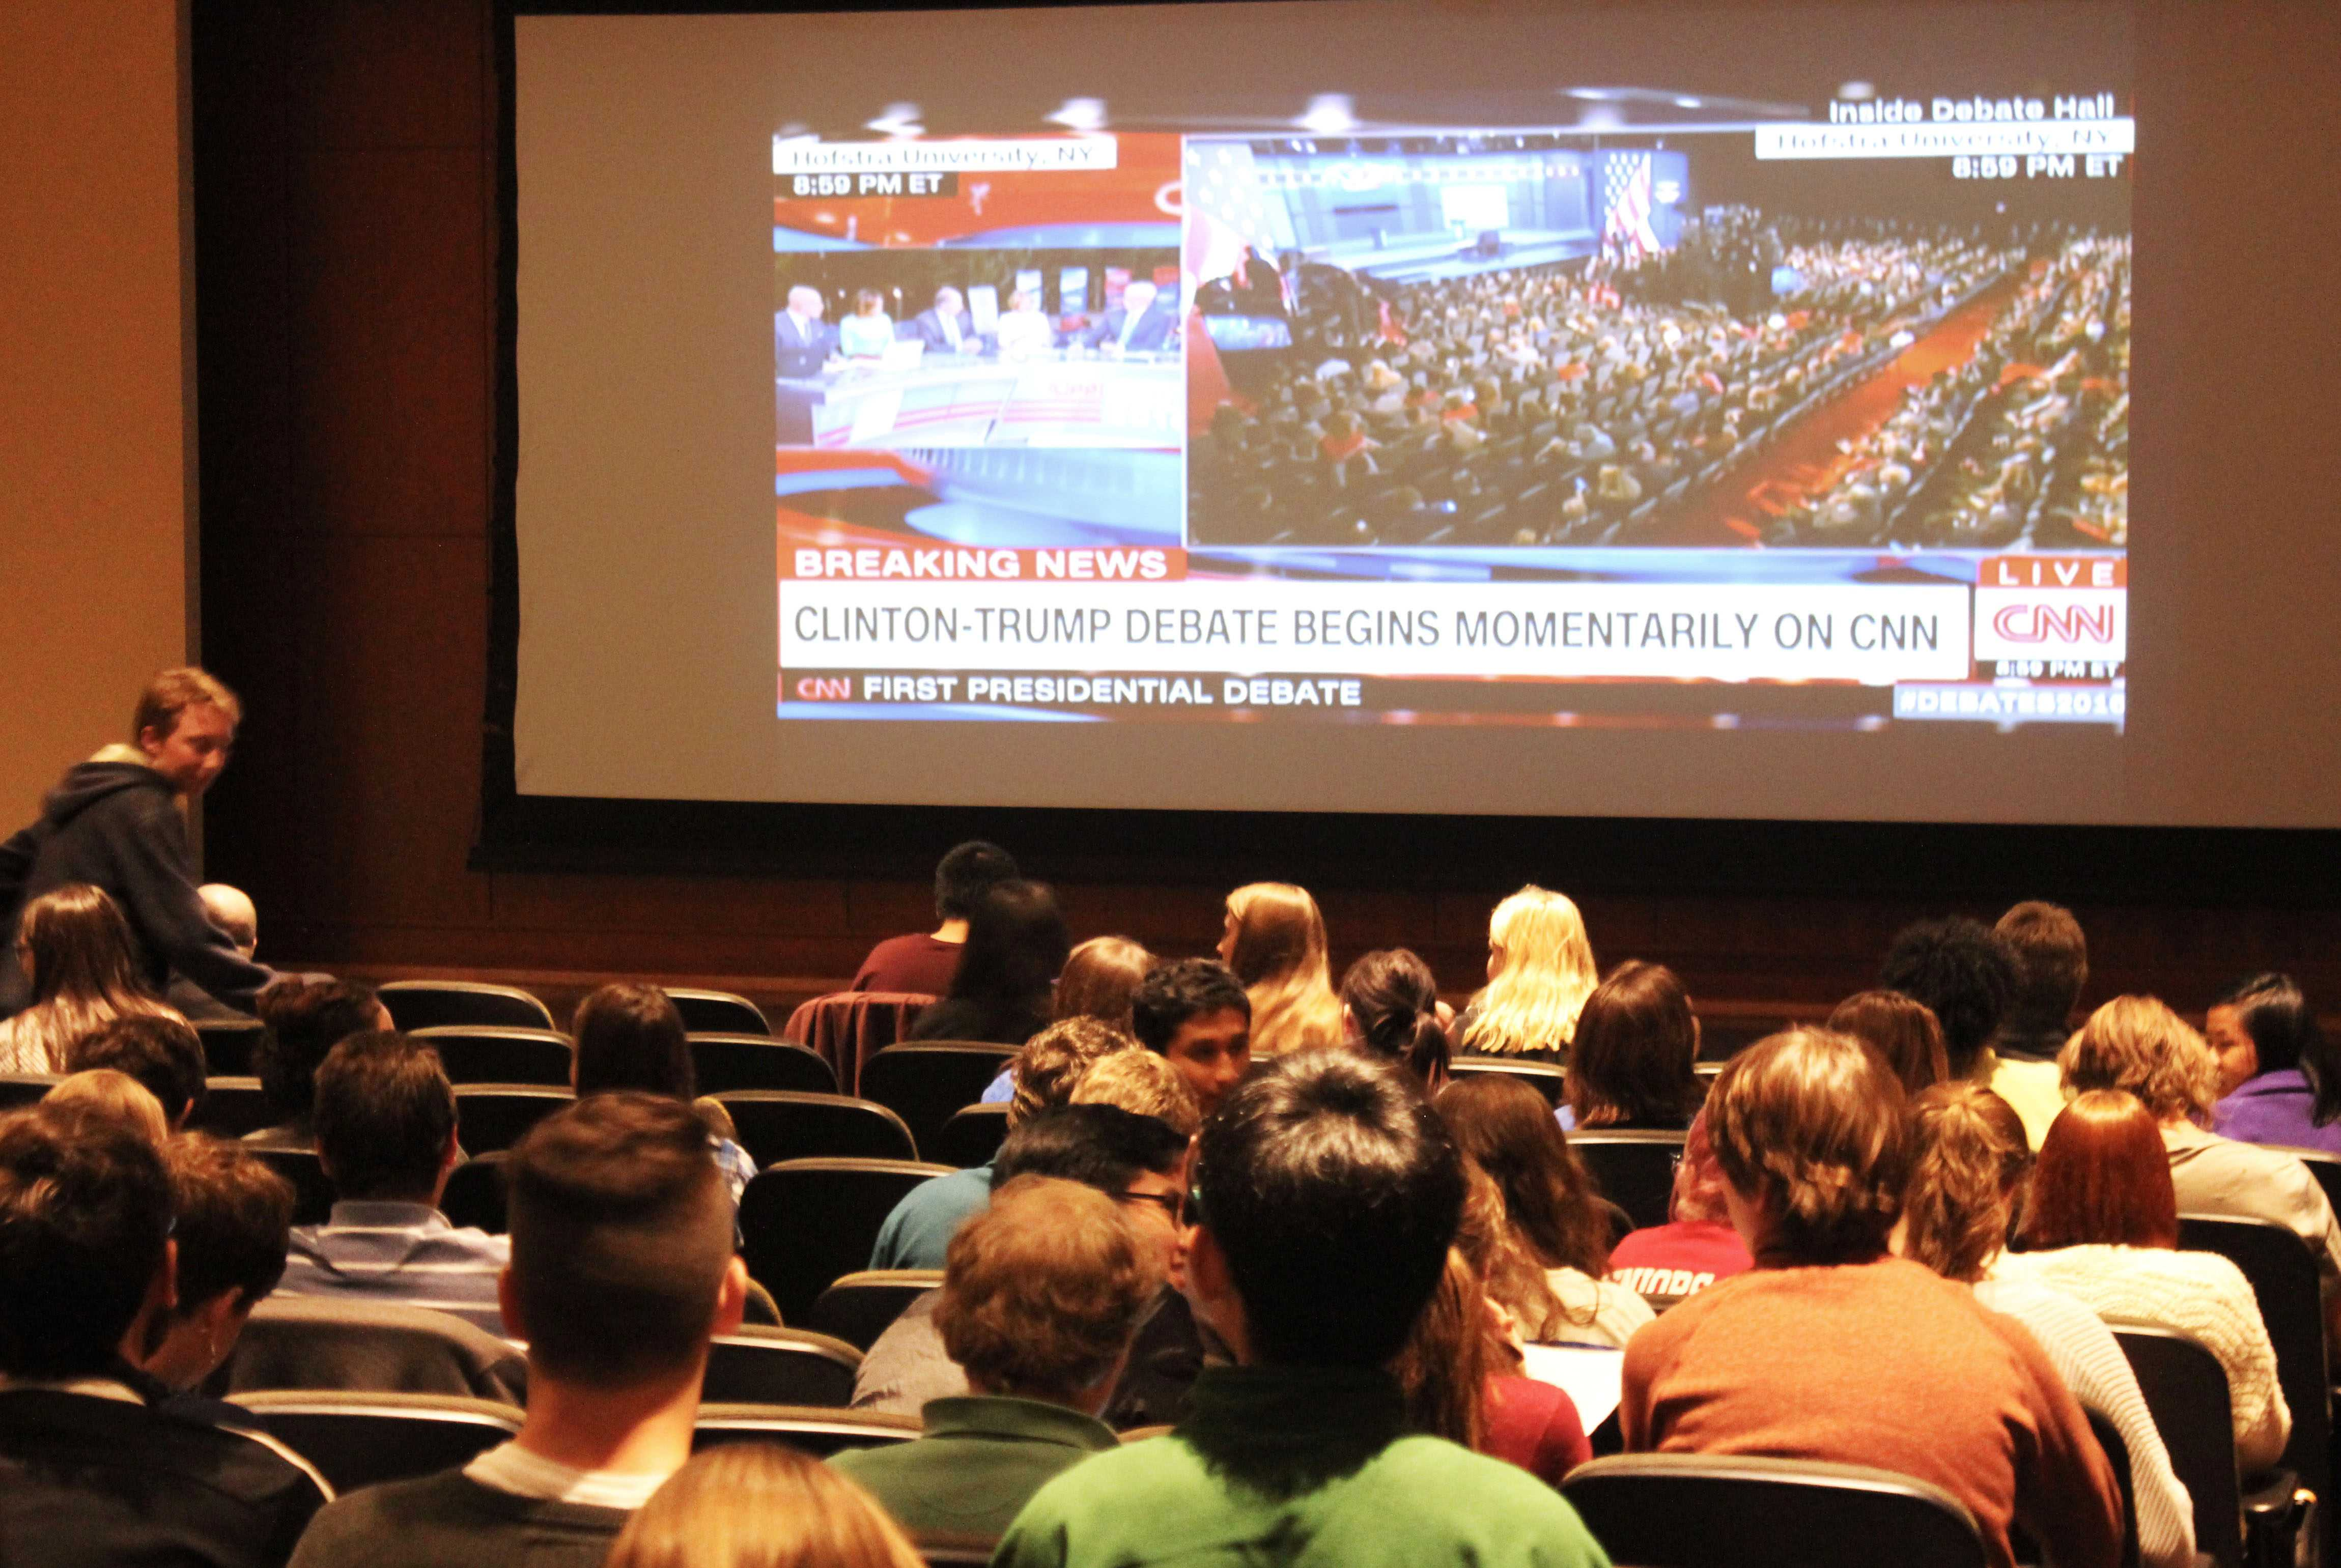 First presidential debate screening draws excited crowd